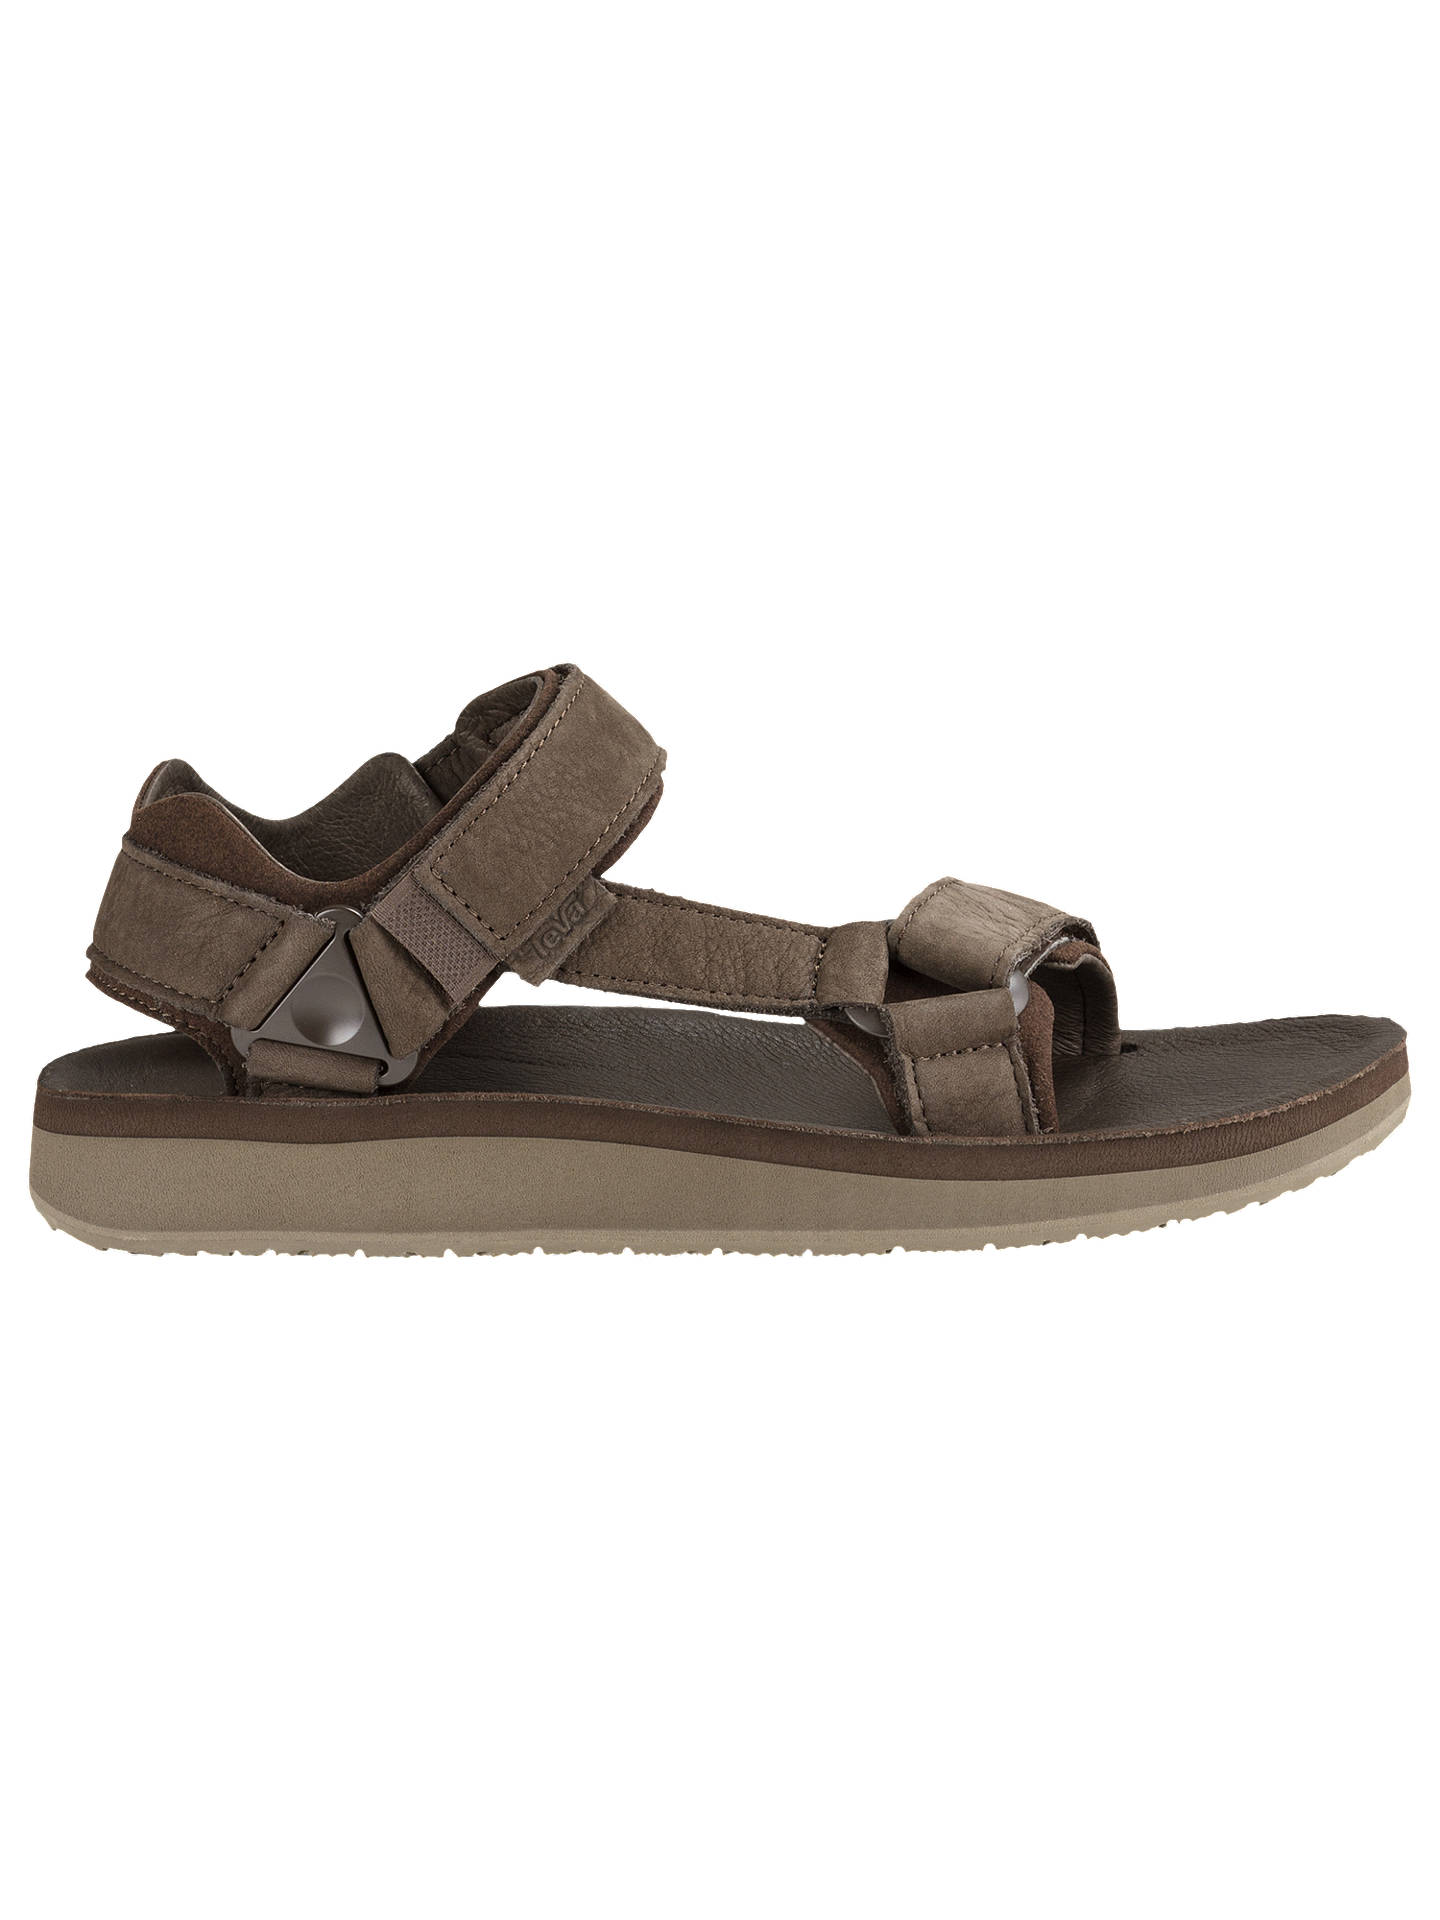 BuyTeva Original Leather Sandals, Chocolate, 7 Online at johnlewis.com